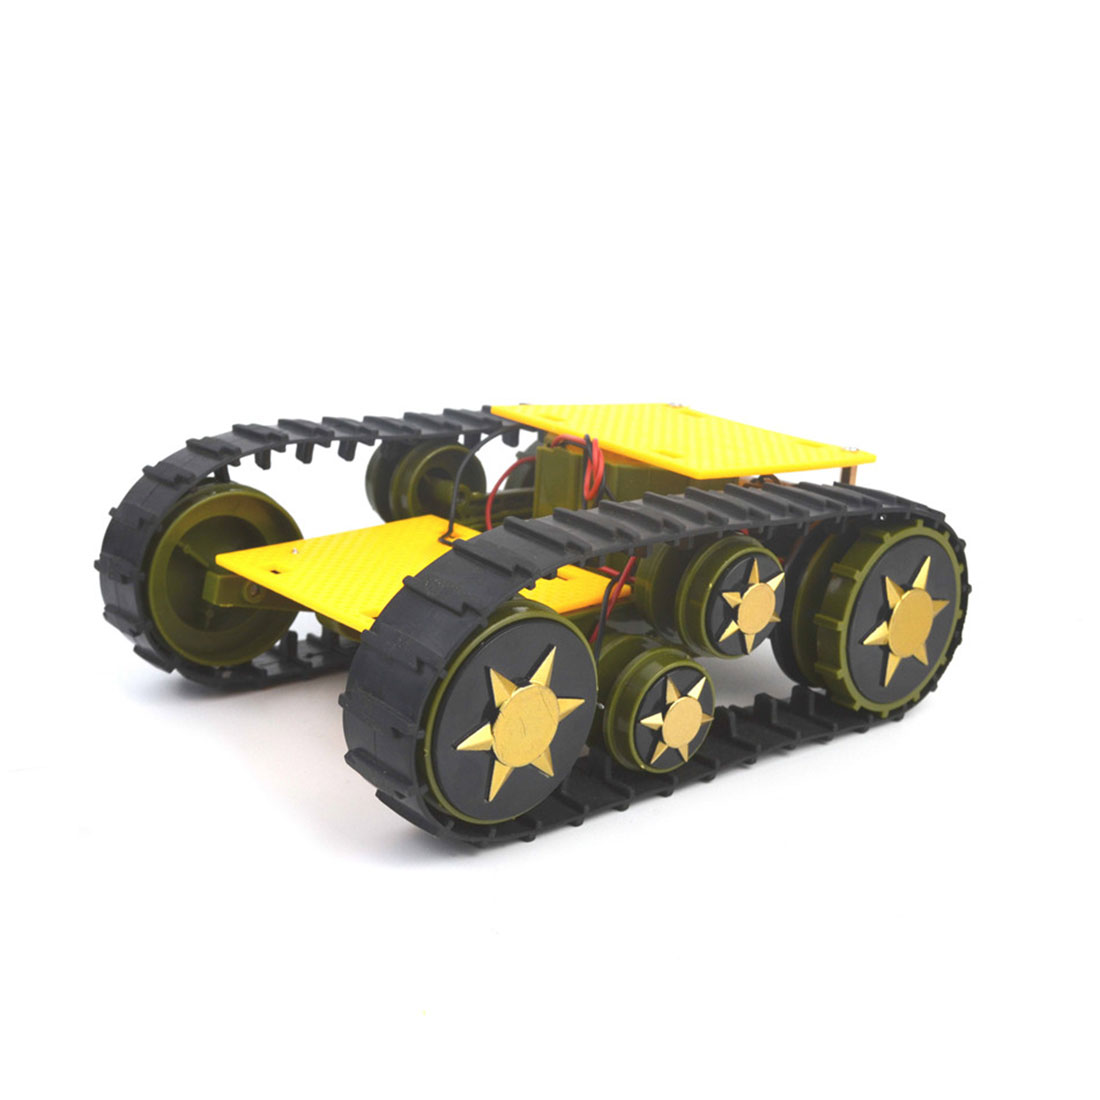 DIY Deformation Smart Tank Robot Crawler Caterpillar Vehicle Platform For Arduino SN1900 Educational Toy Gift For Kids Adults